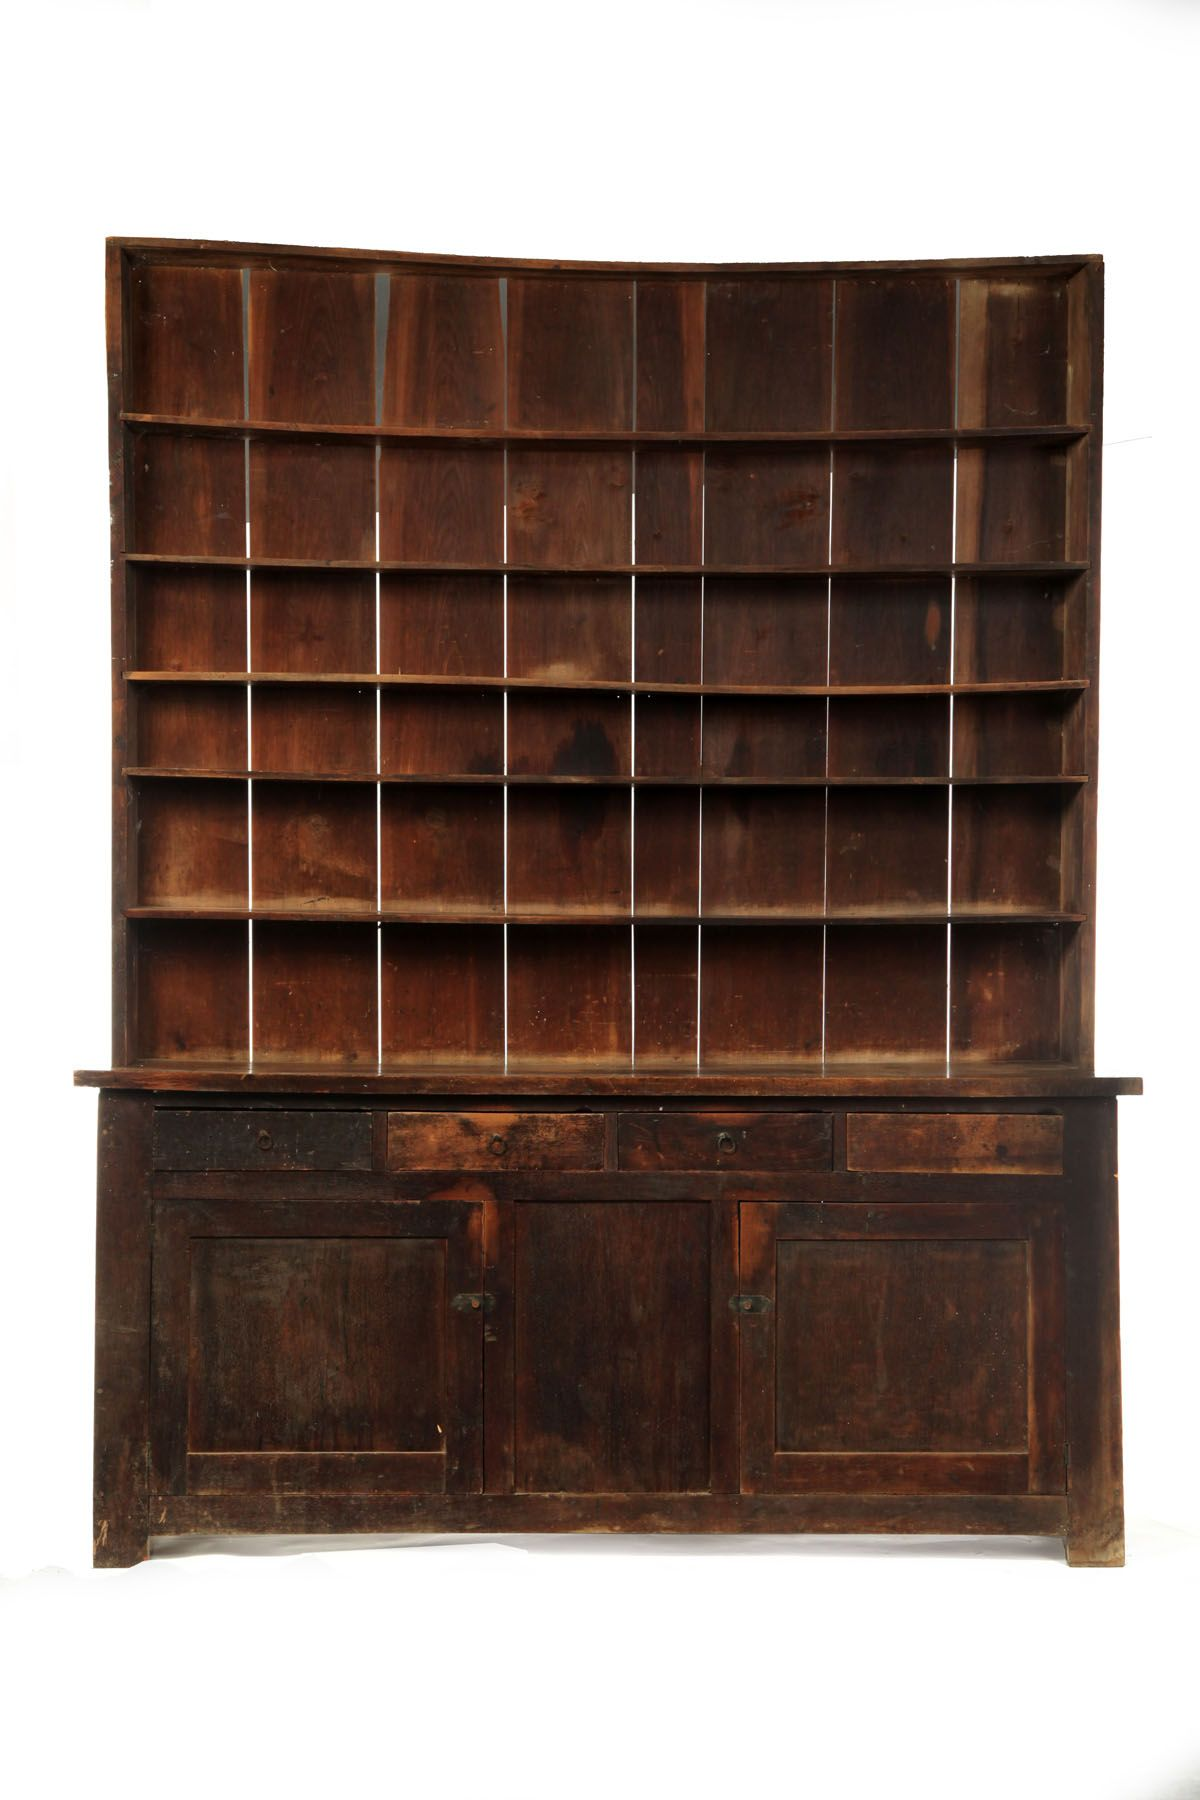 Garth's Auctions, Inc. - Auctioneers Appraisers : Full Details for Lot 563